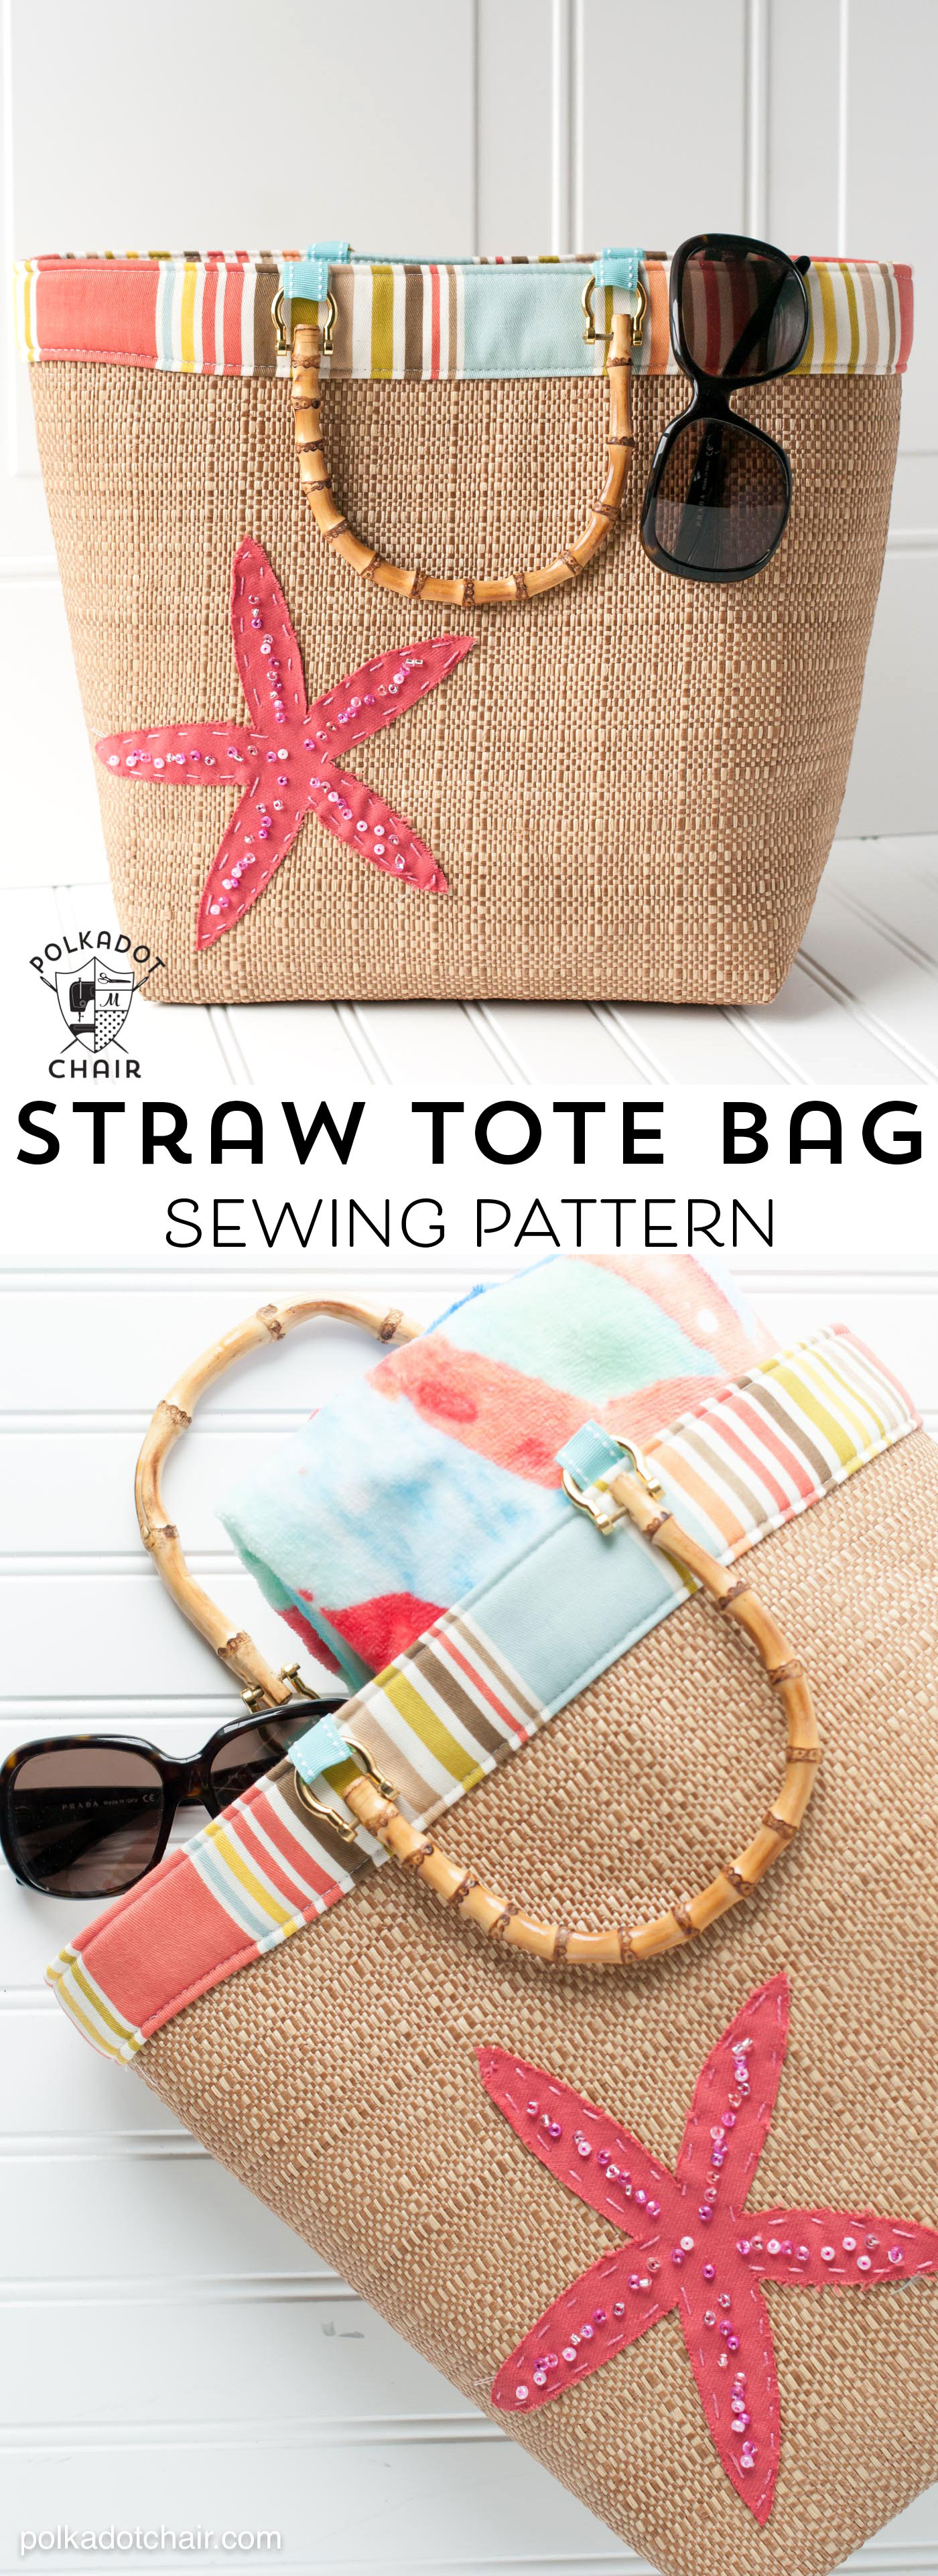 Tote Bag Pattern Unique Beach Bound Straw tote A Beach Bag Sewing Pattern Of Beautiful 46 Ideas tote Bag Pattern